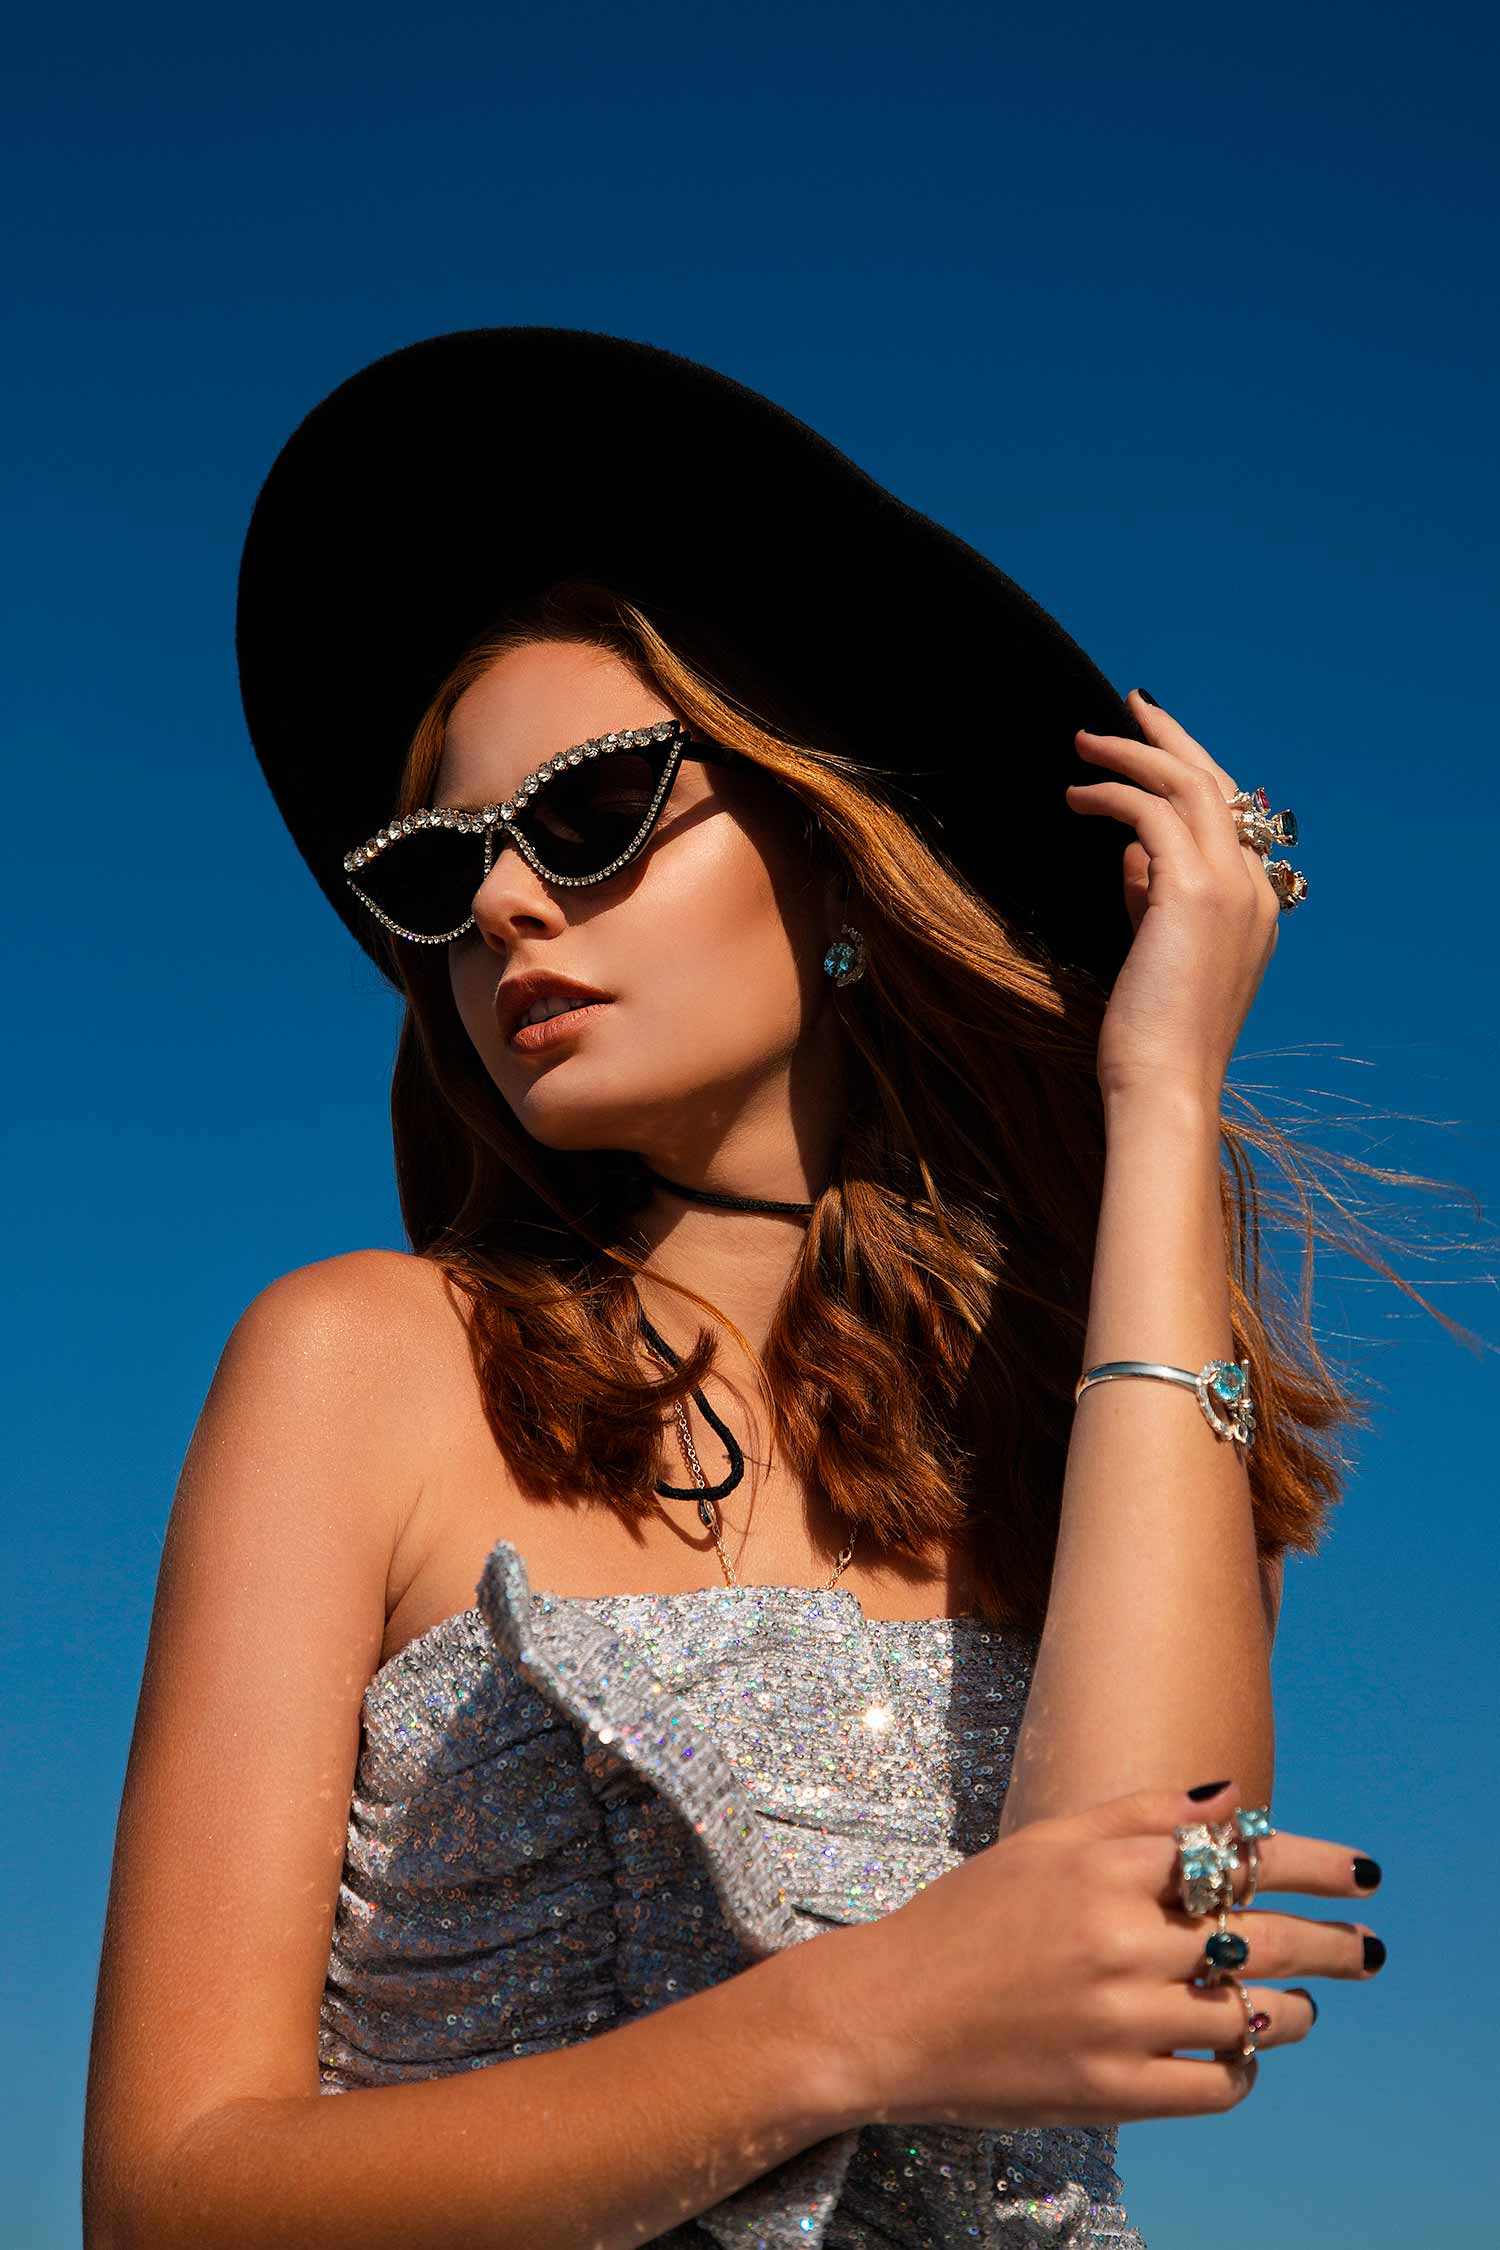 Close-up of model in shiny dress, black sunglasses and a hat wearing Zydrune designer jewellery.